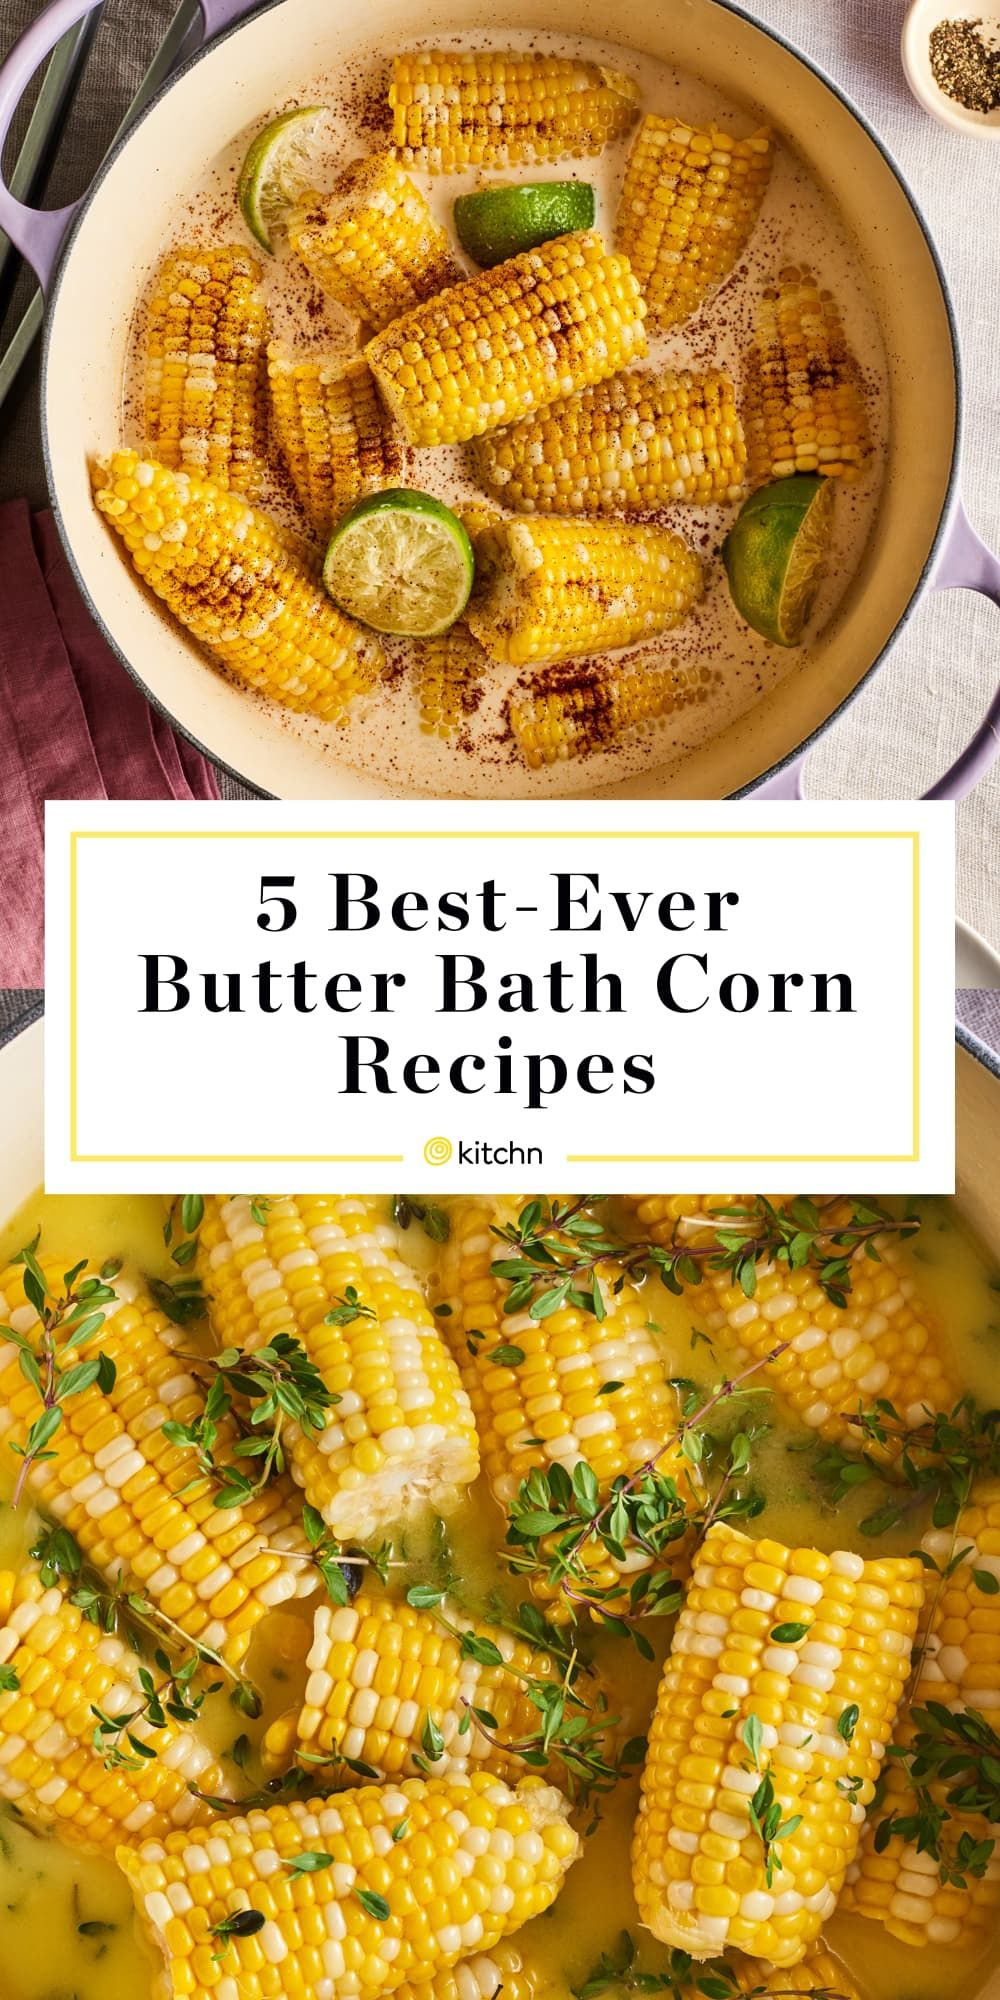 This Is the Only Way We'll Cook Corn on the Cob Th